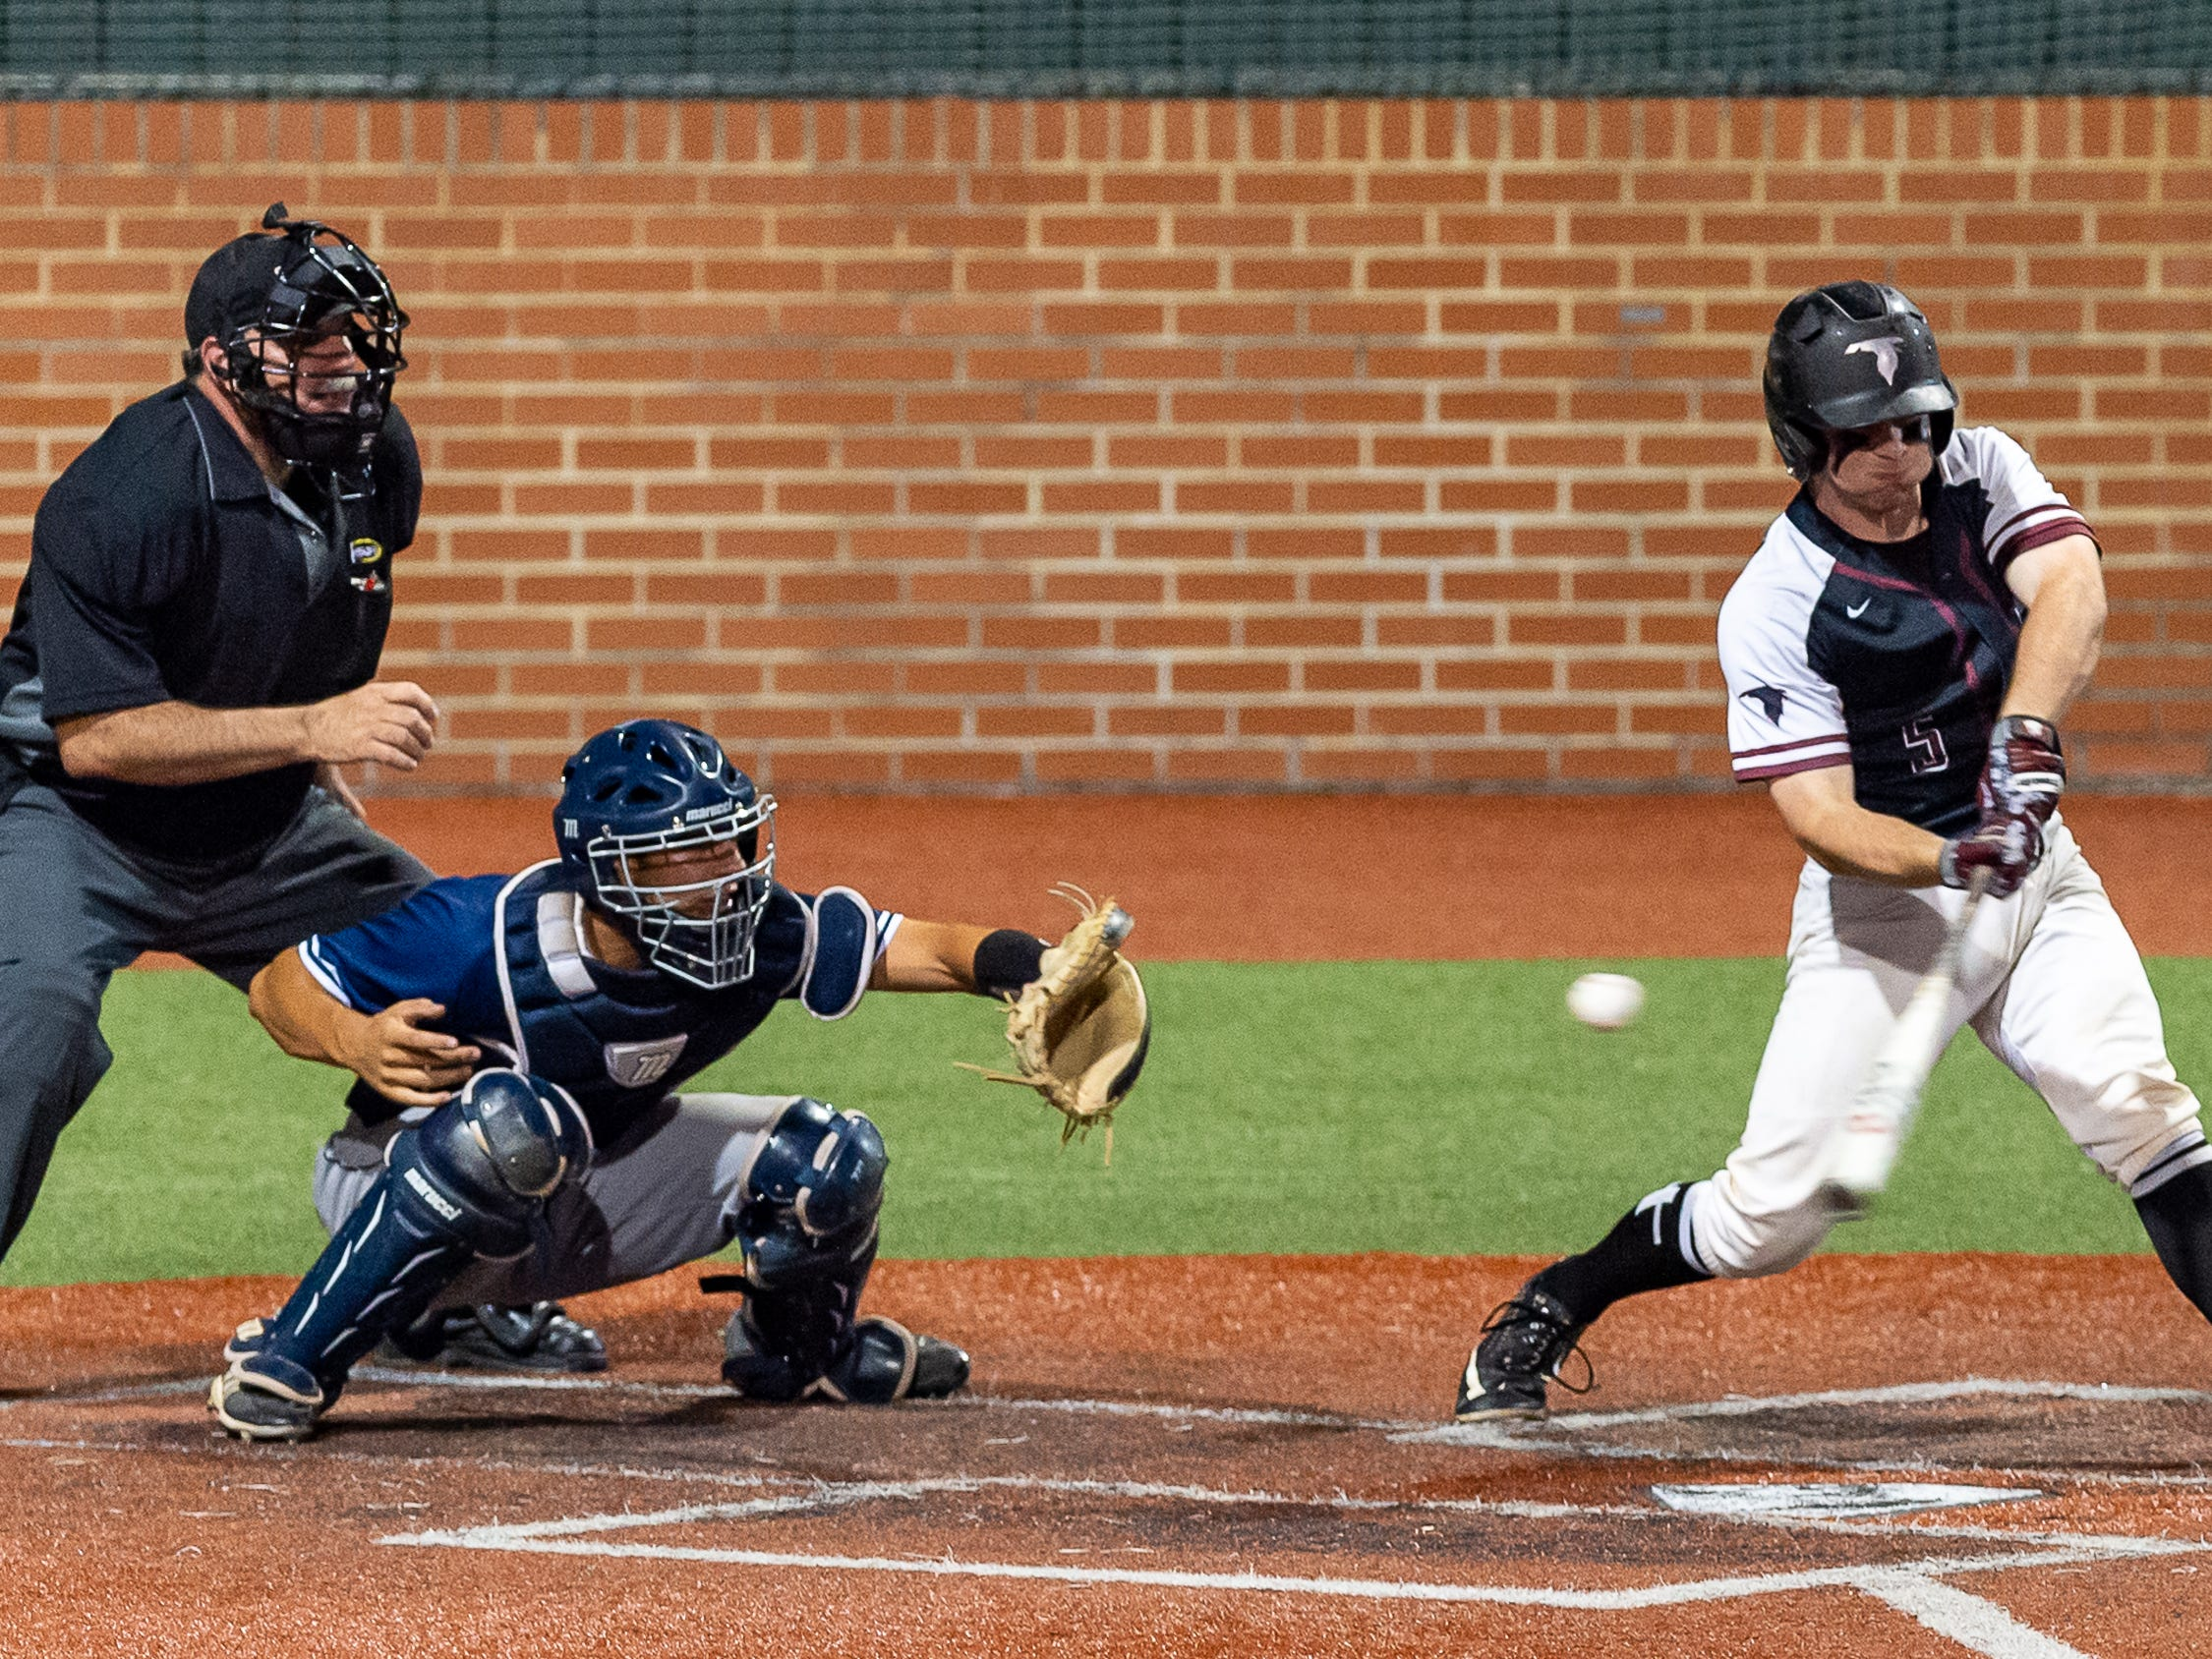 Austin Arceneaux working behind the plate as Ascension Episcopal takes on St. Thomas Aquinas in the semi final round at the LHSAA State Championship. Wednesday, May 8, 2019.